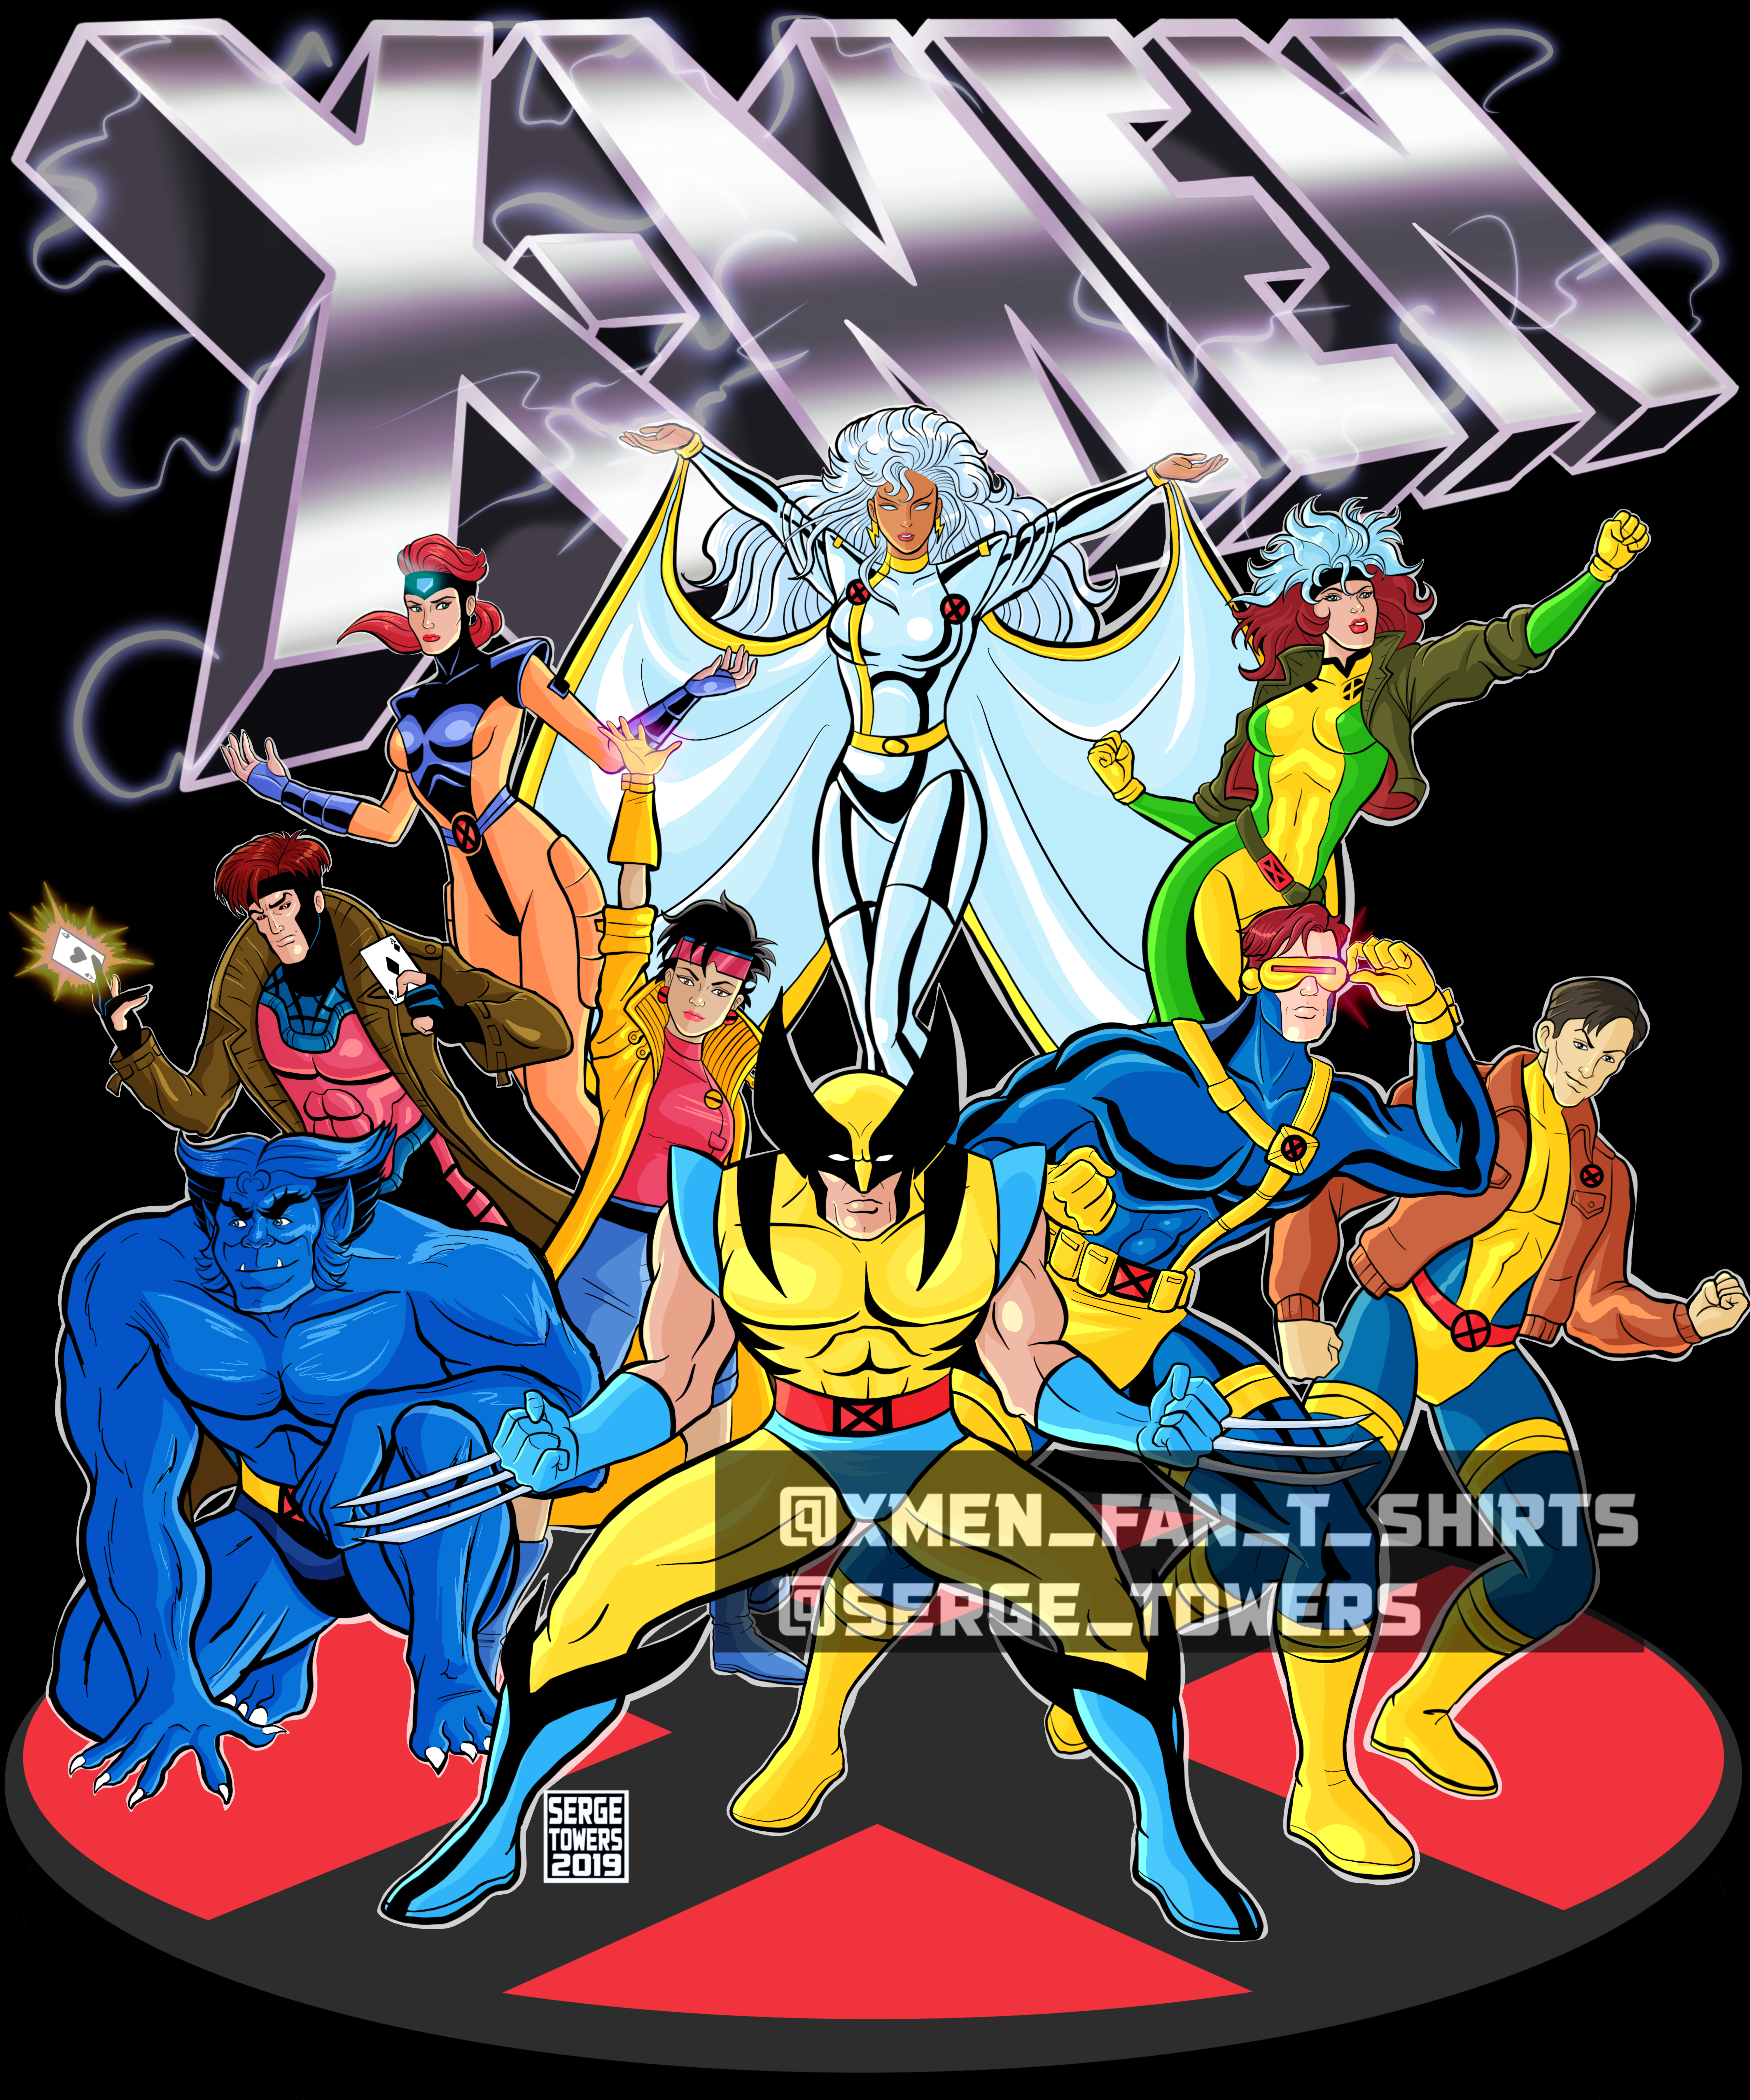 X Men Animated Series In 2020 X Men Batman The Animated Series Animation